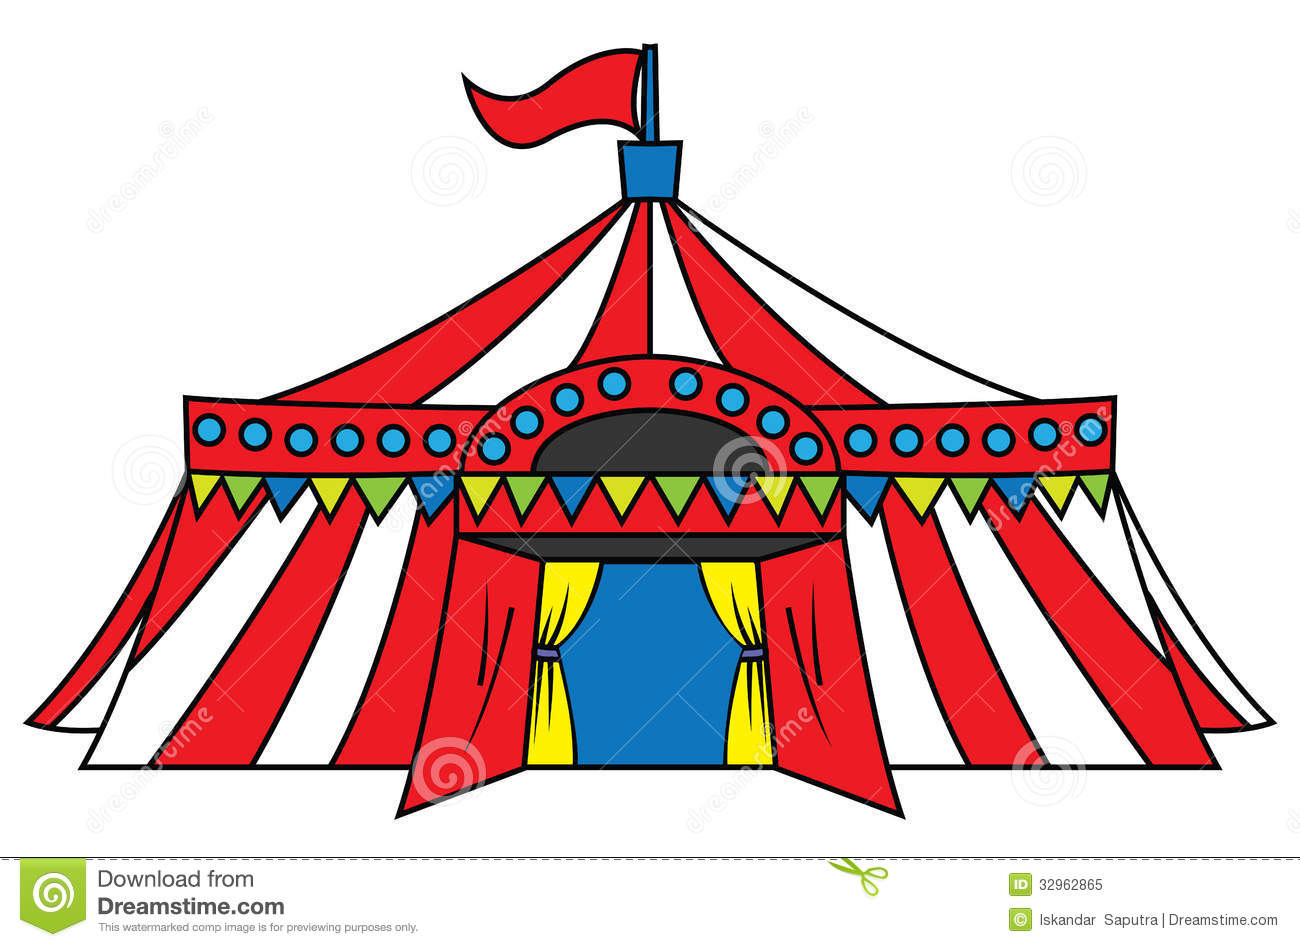 Circus Tent Royalty Free Stock Photo - Image: 32962865